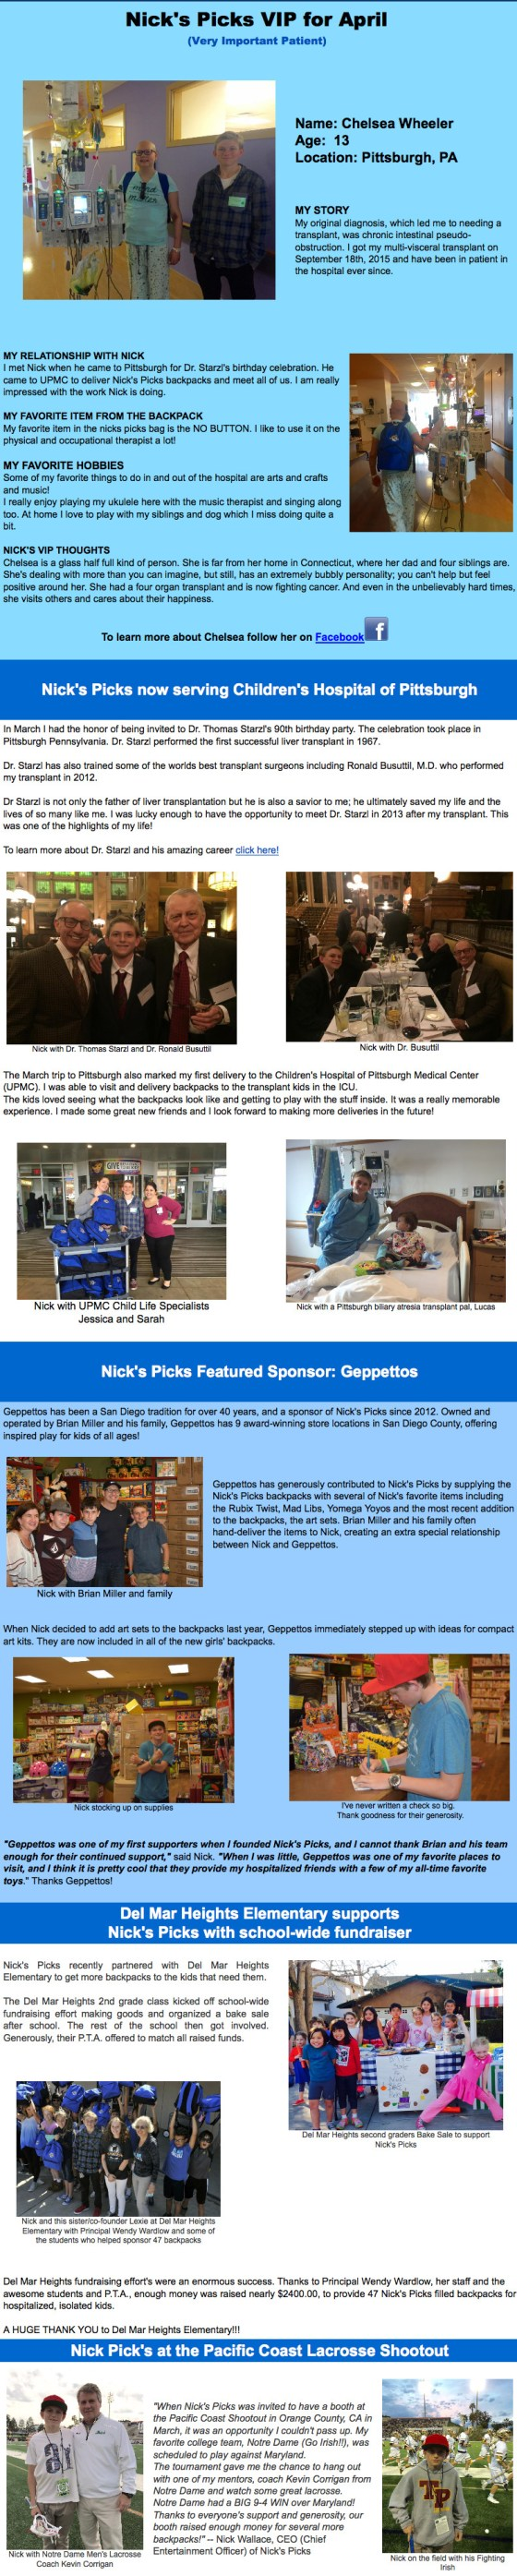 Bottom Nick's Picks Newsletter#3- April 2016